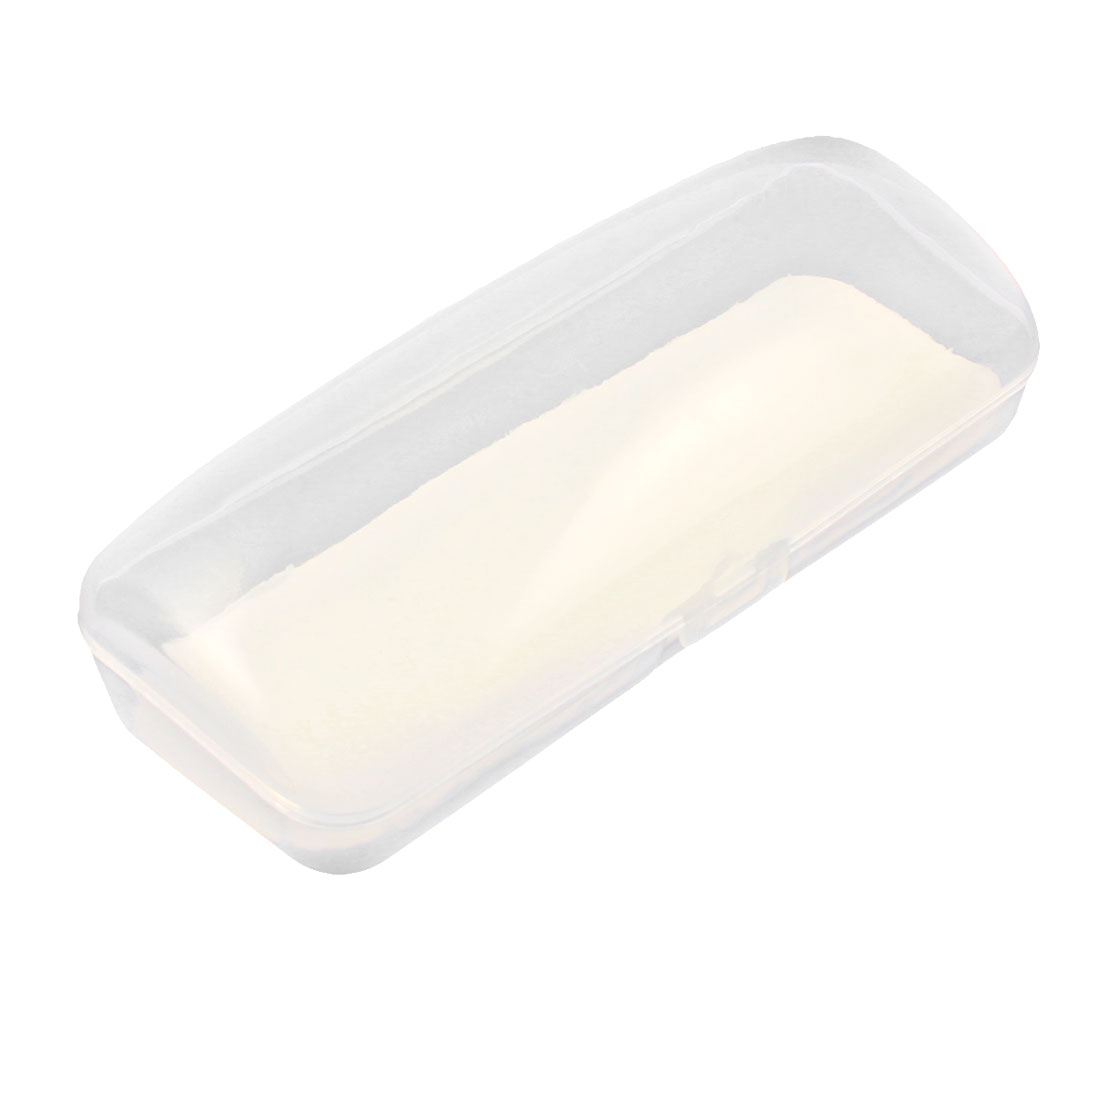 Clear White Plastic Rectangle Shaped Eyeglasses Case Box Holder